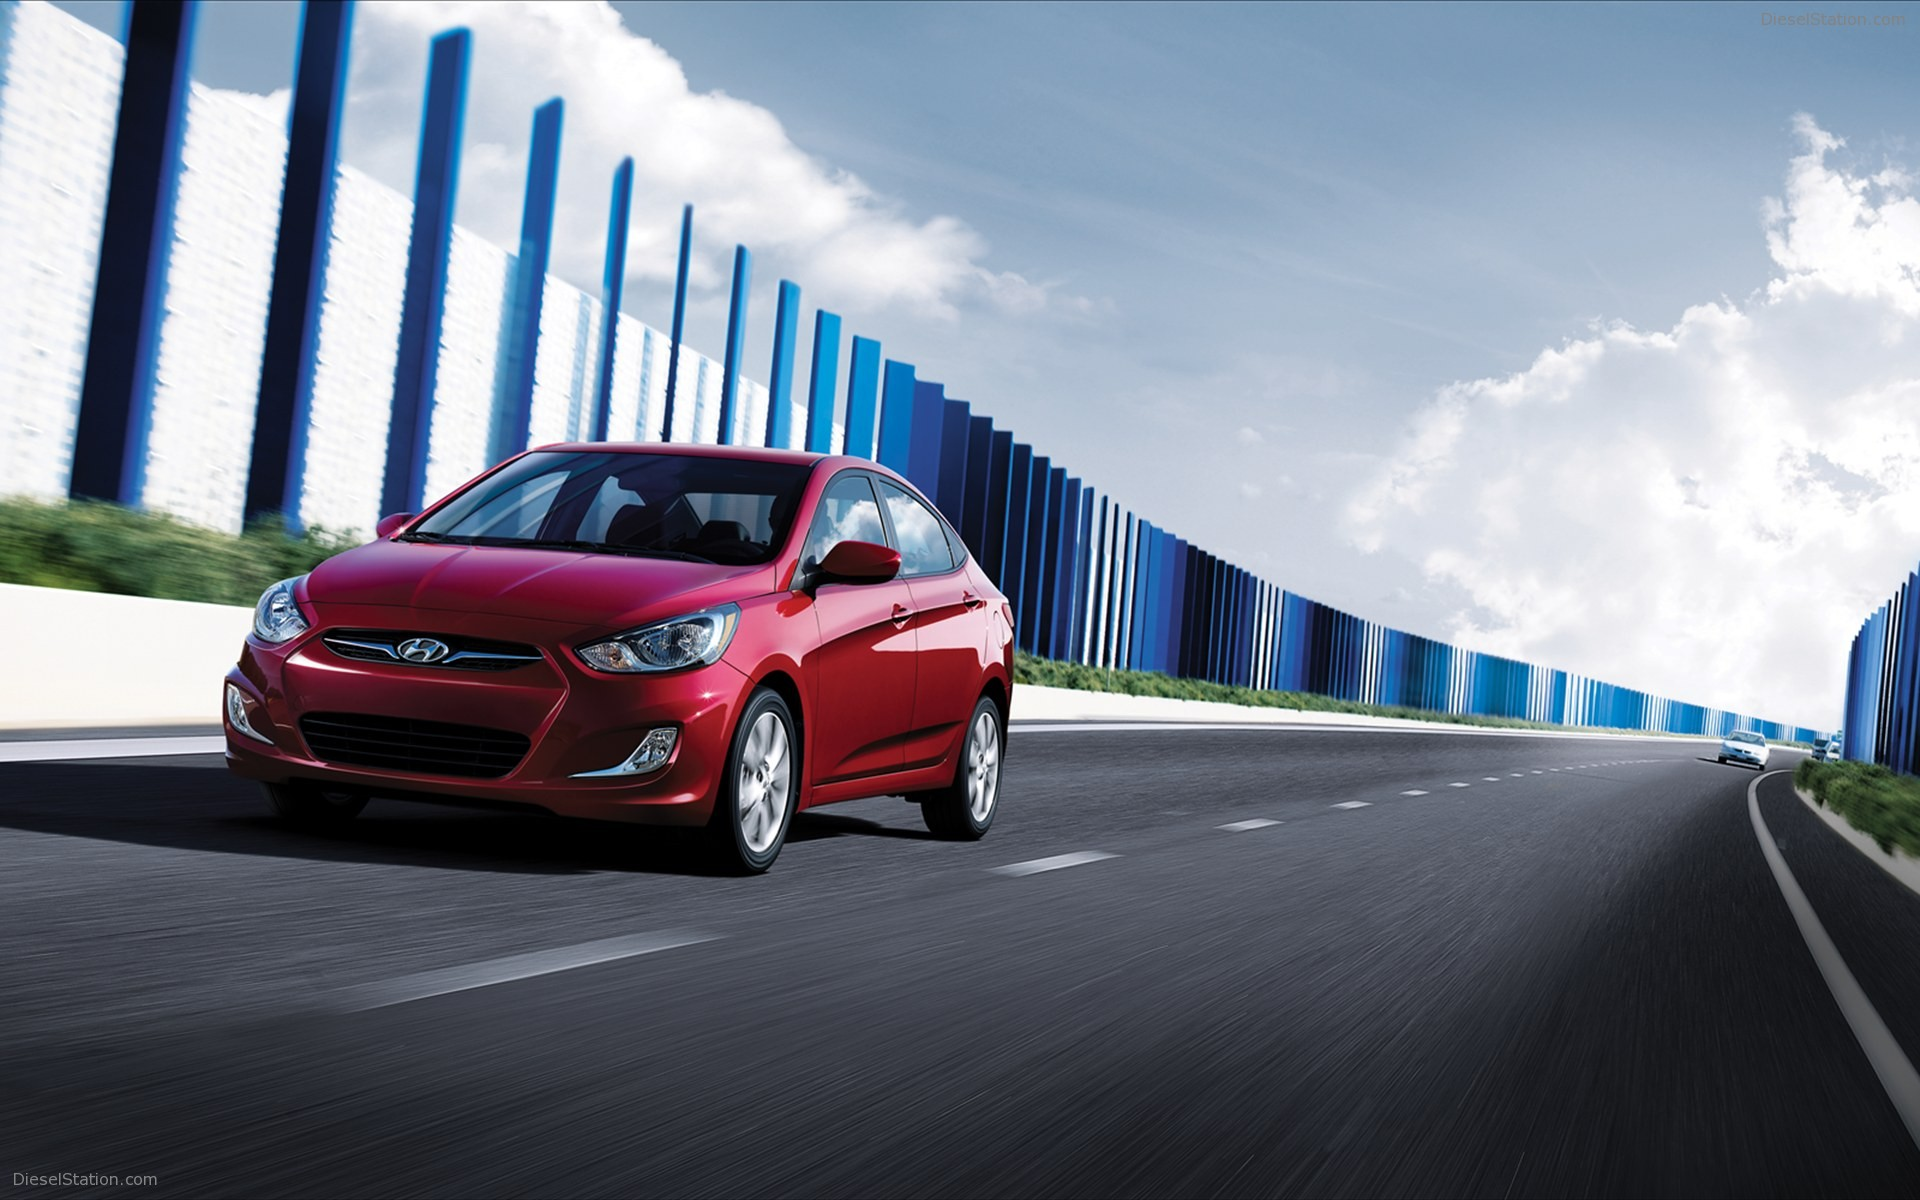 Hyundai Accent 2012 Widescreen Exotic Car Wallpapers 14 of 44 1920x1200